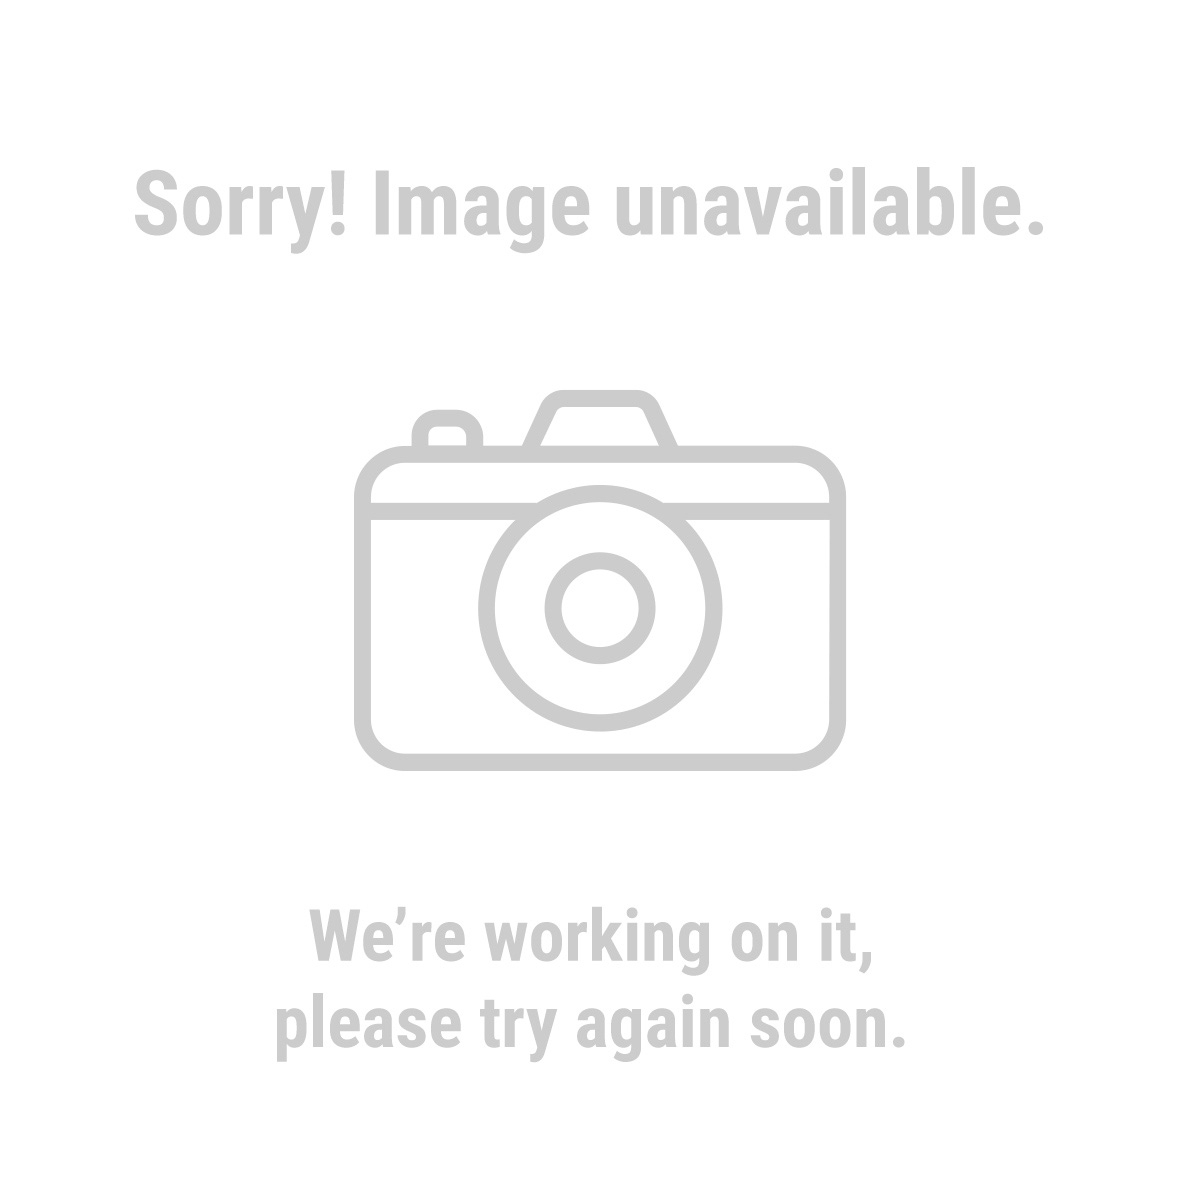 Chicago Electric Welding 62486 240 Volt Inverter Arc/TIG Welder with Digital Readout